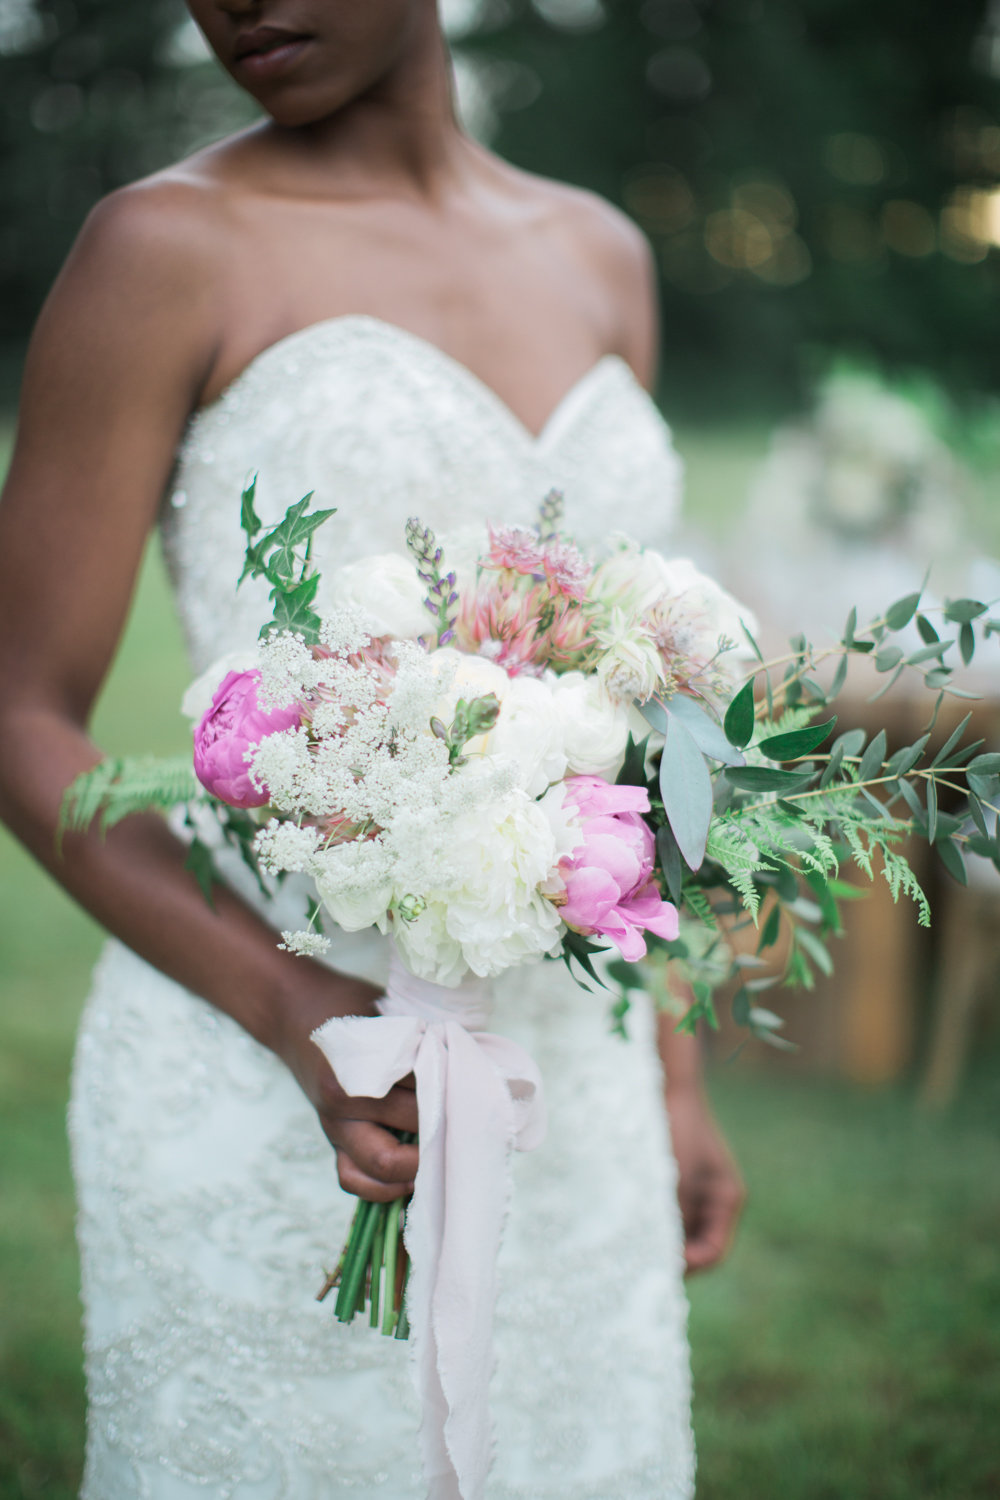 View More: http://madisonabbeyphotography.pass.us/the-rustic-life